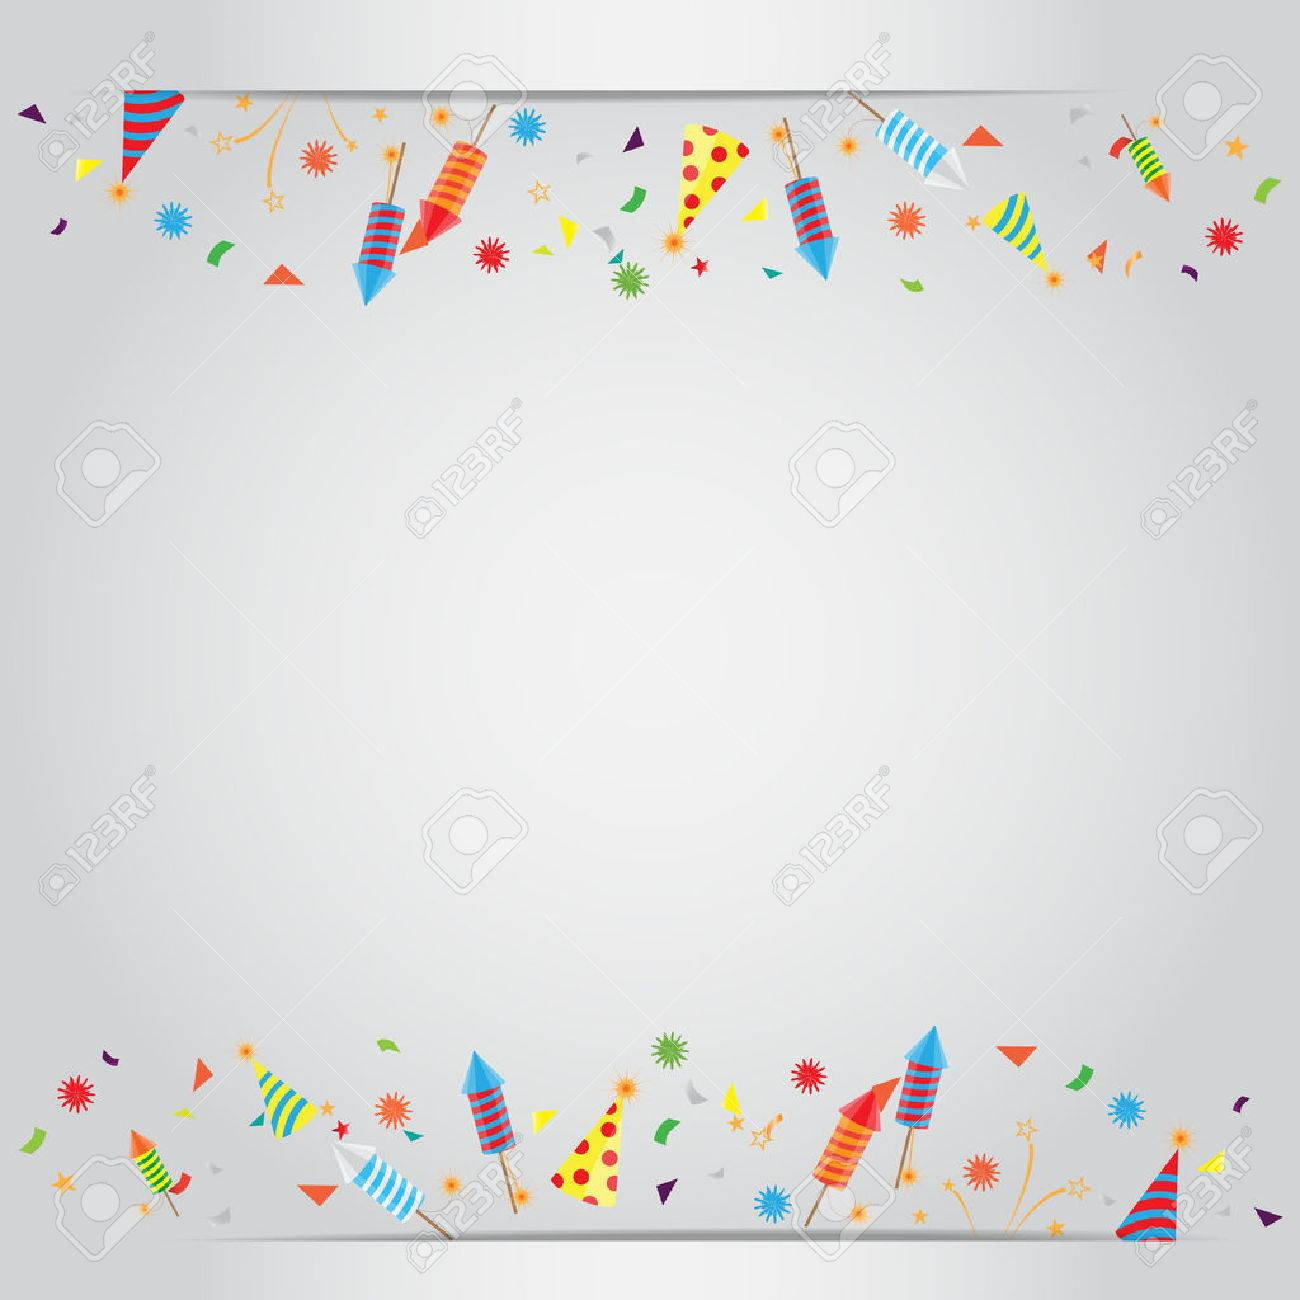 confetti and firework background can be use for celebration new year birthday